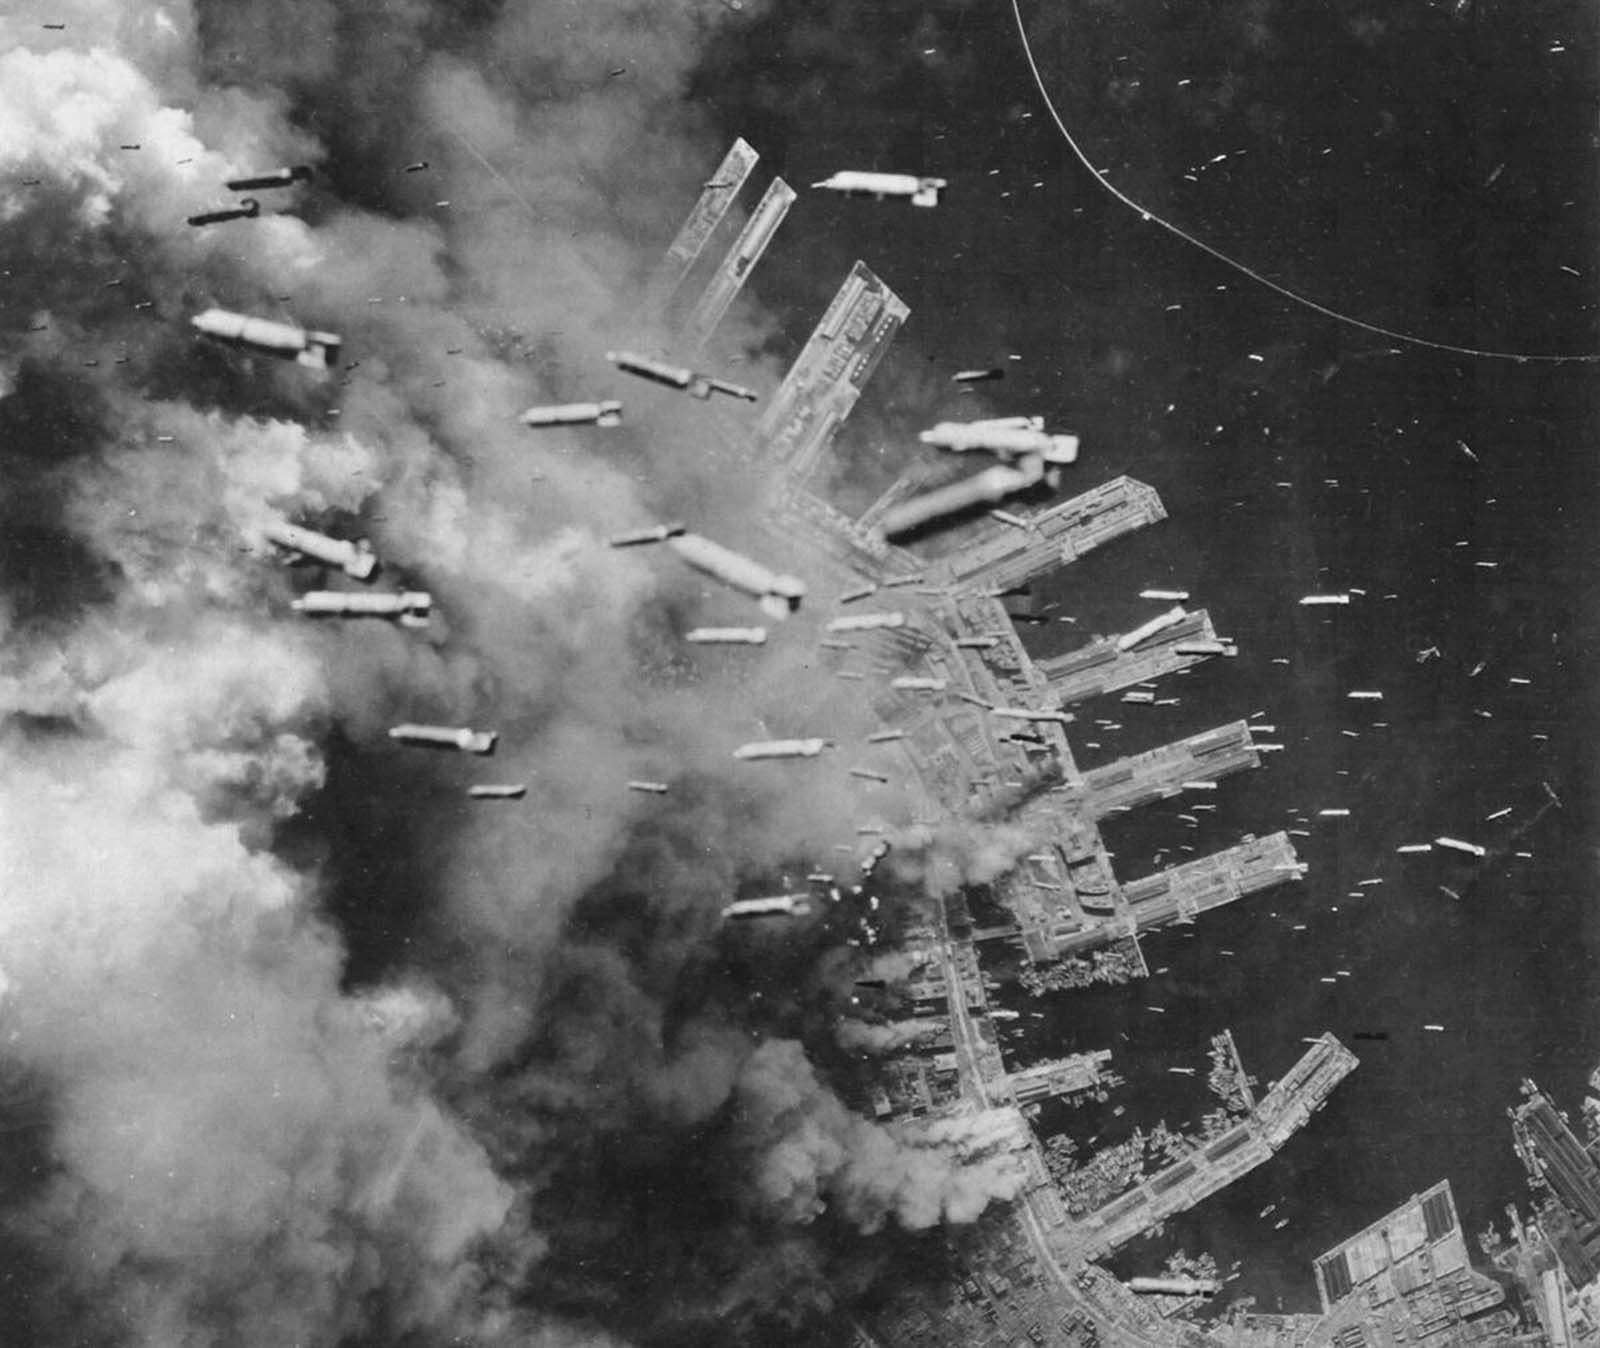 Incendiary bombs are dropped from B-29 Superfortresses of the U.S. Army Air Forces on already-burning landing piers and surrounding buildings in Kobe, Japan, on June 4, 1945.